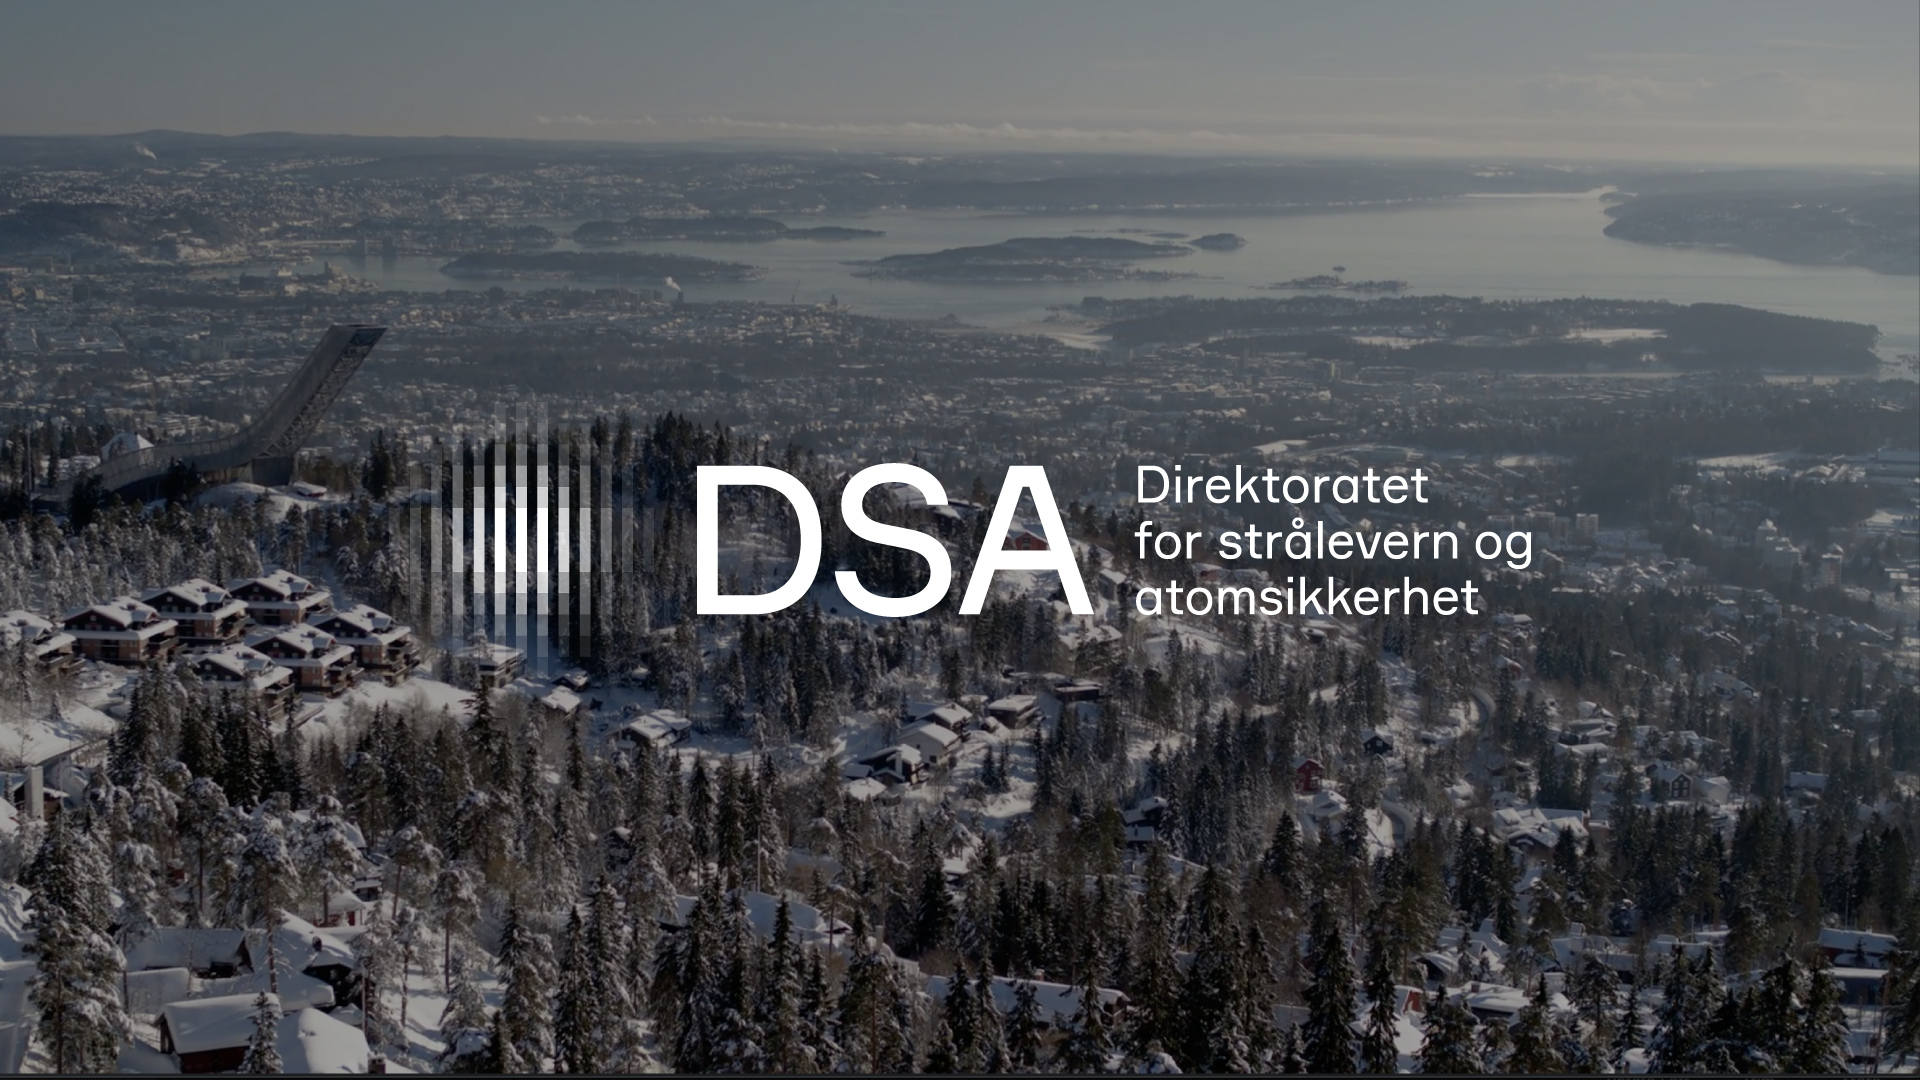 Cover image: Norwegian Radiation and Nuclear Safety Authority (DSA)